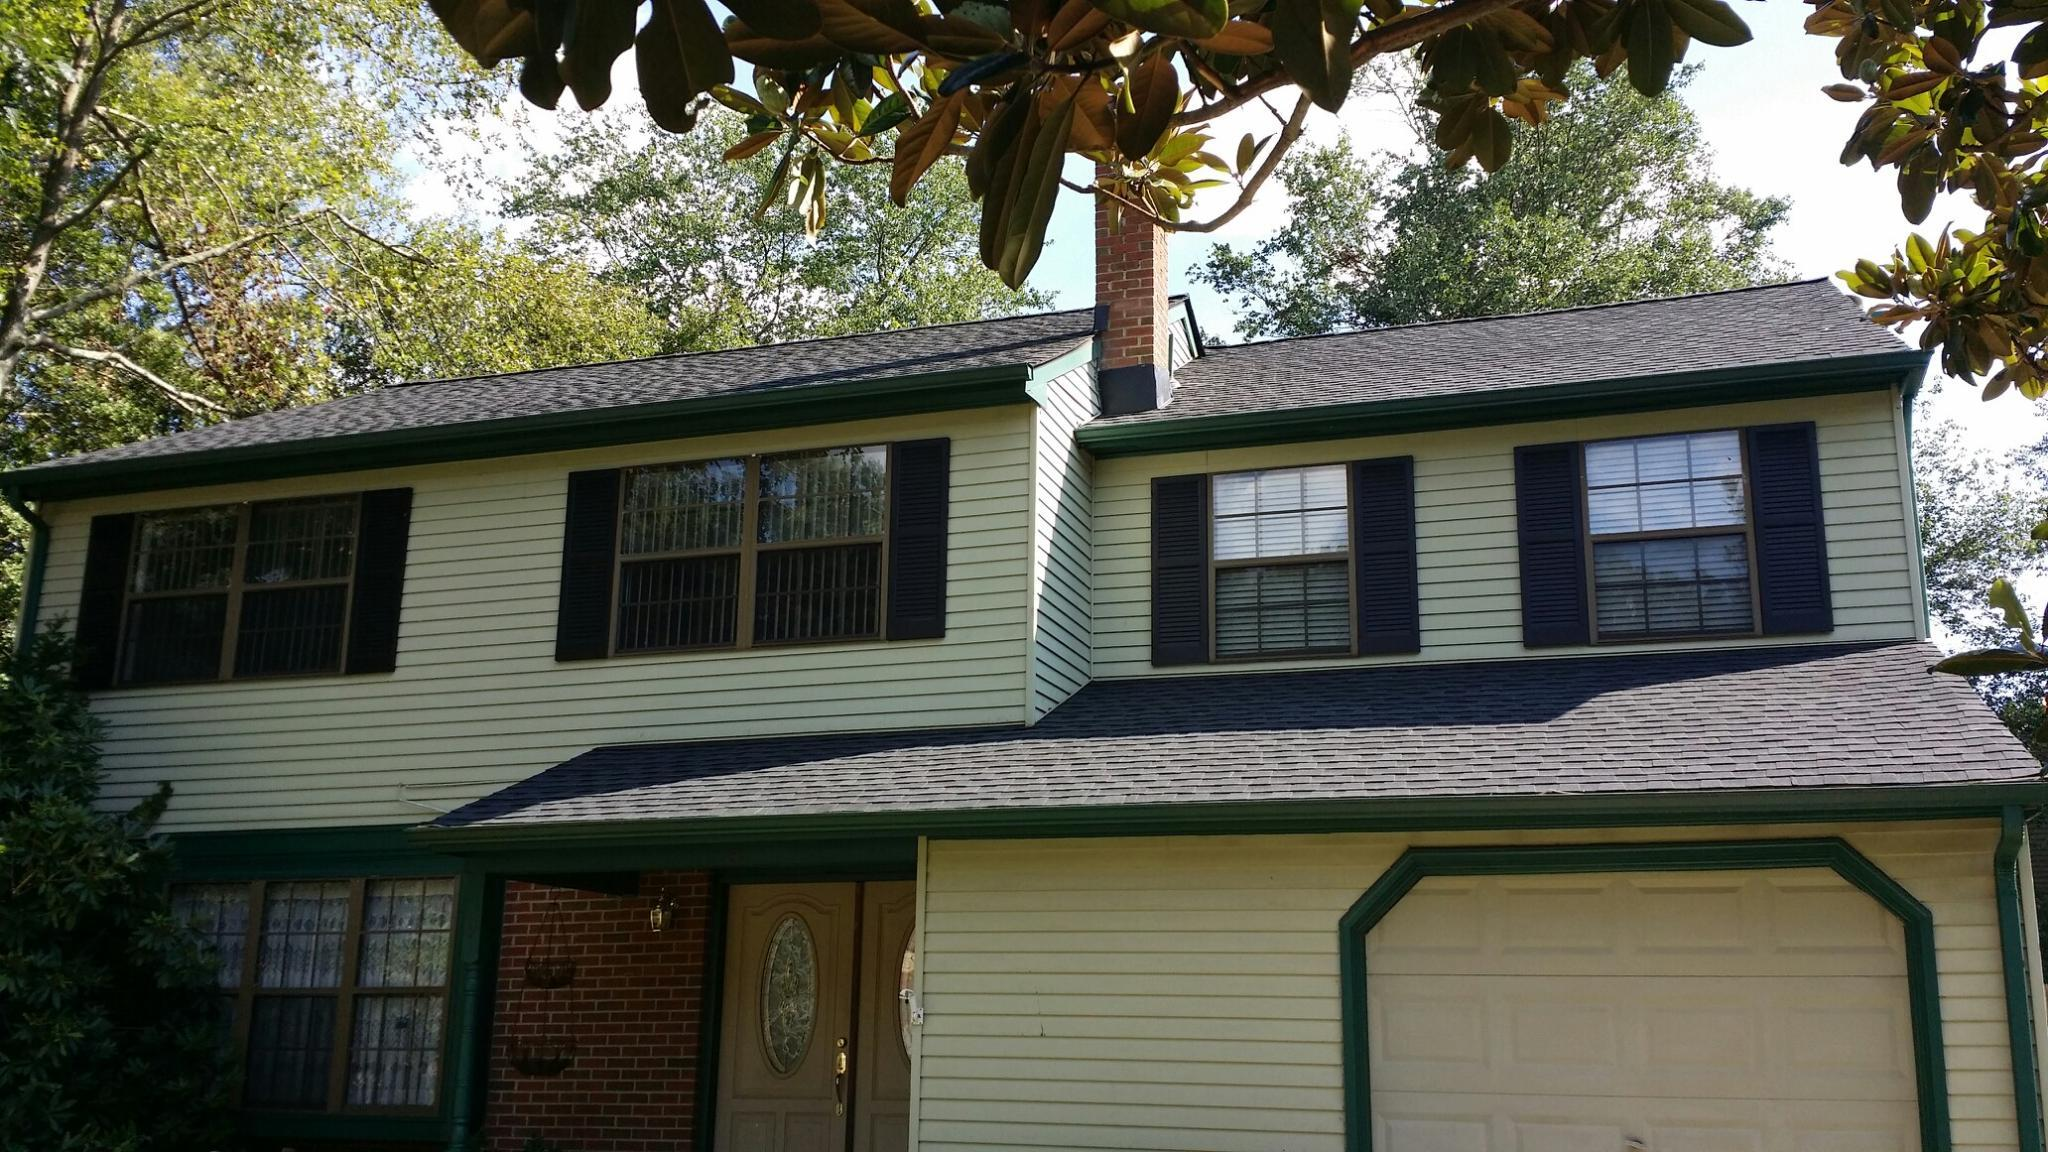 Gaf Timberline Hd Roofing System With Charcoal Shingles